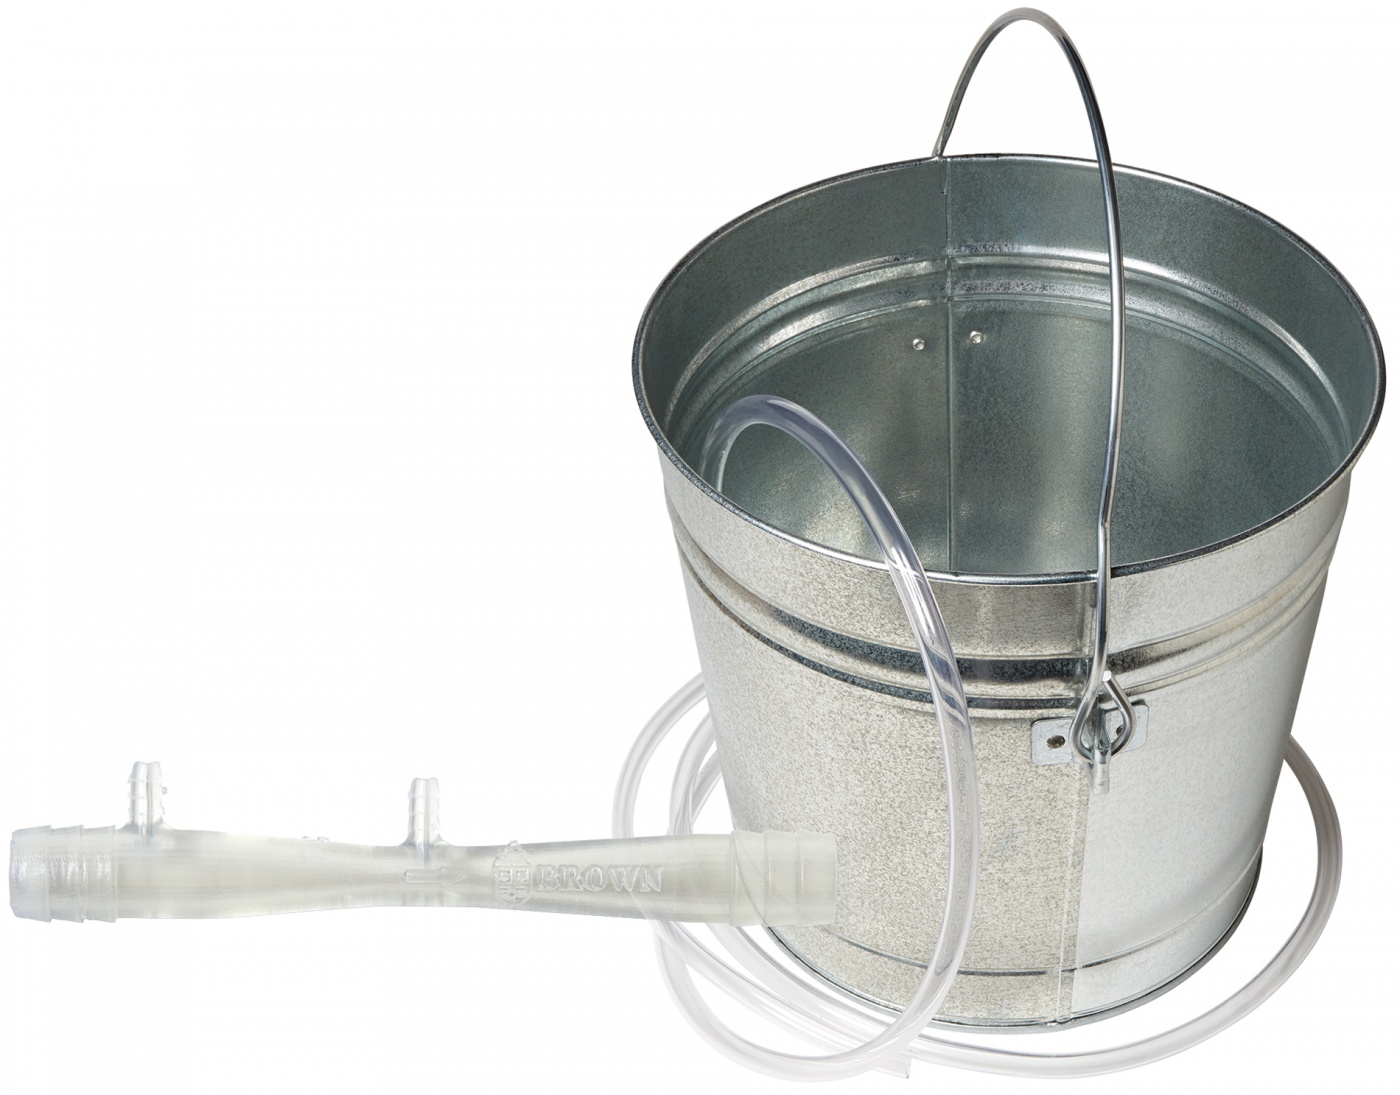 photo of a bucket and water pressure sensor